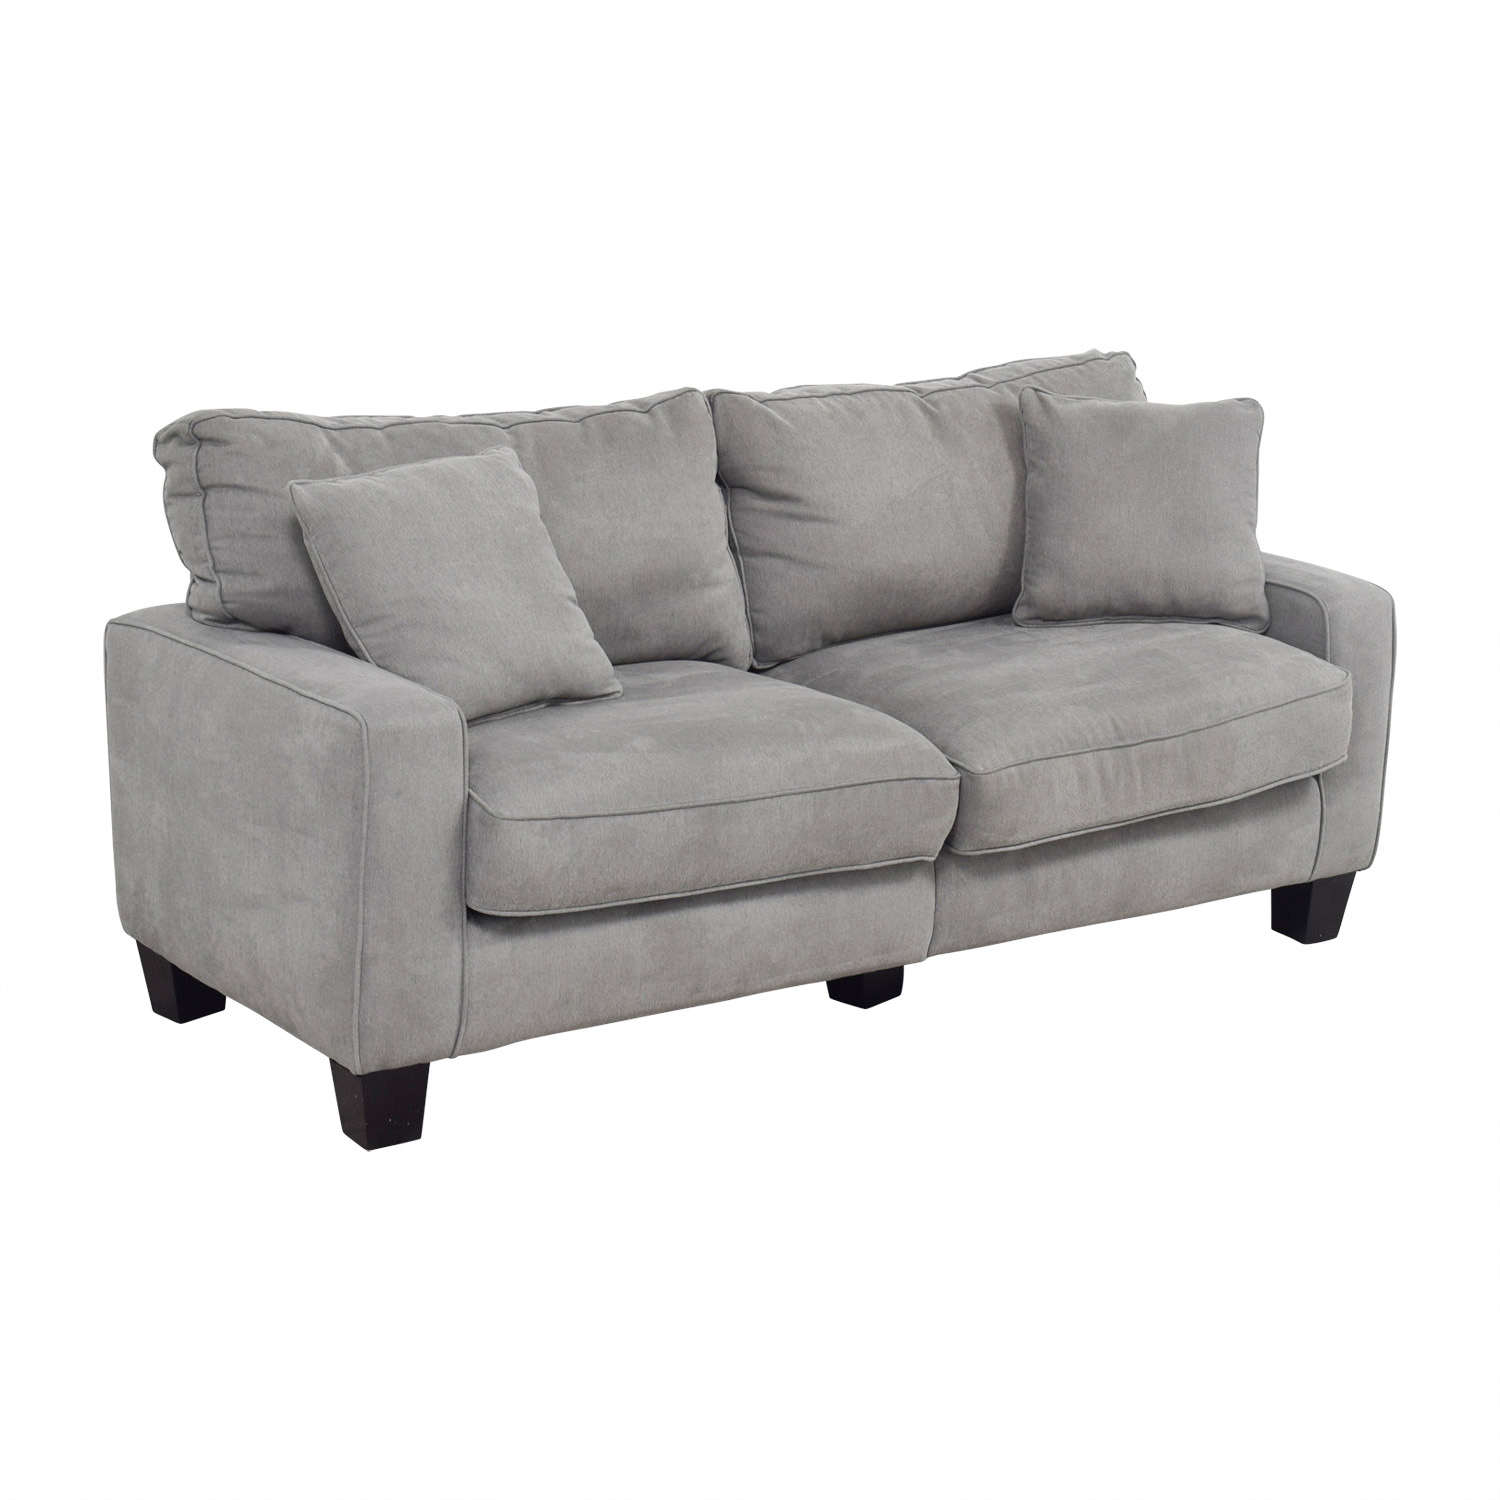 Serta Serta Grey Loveseat with Toss Pillows for sale